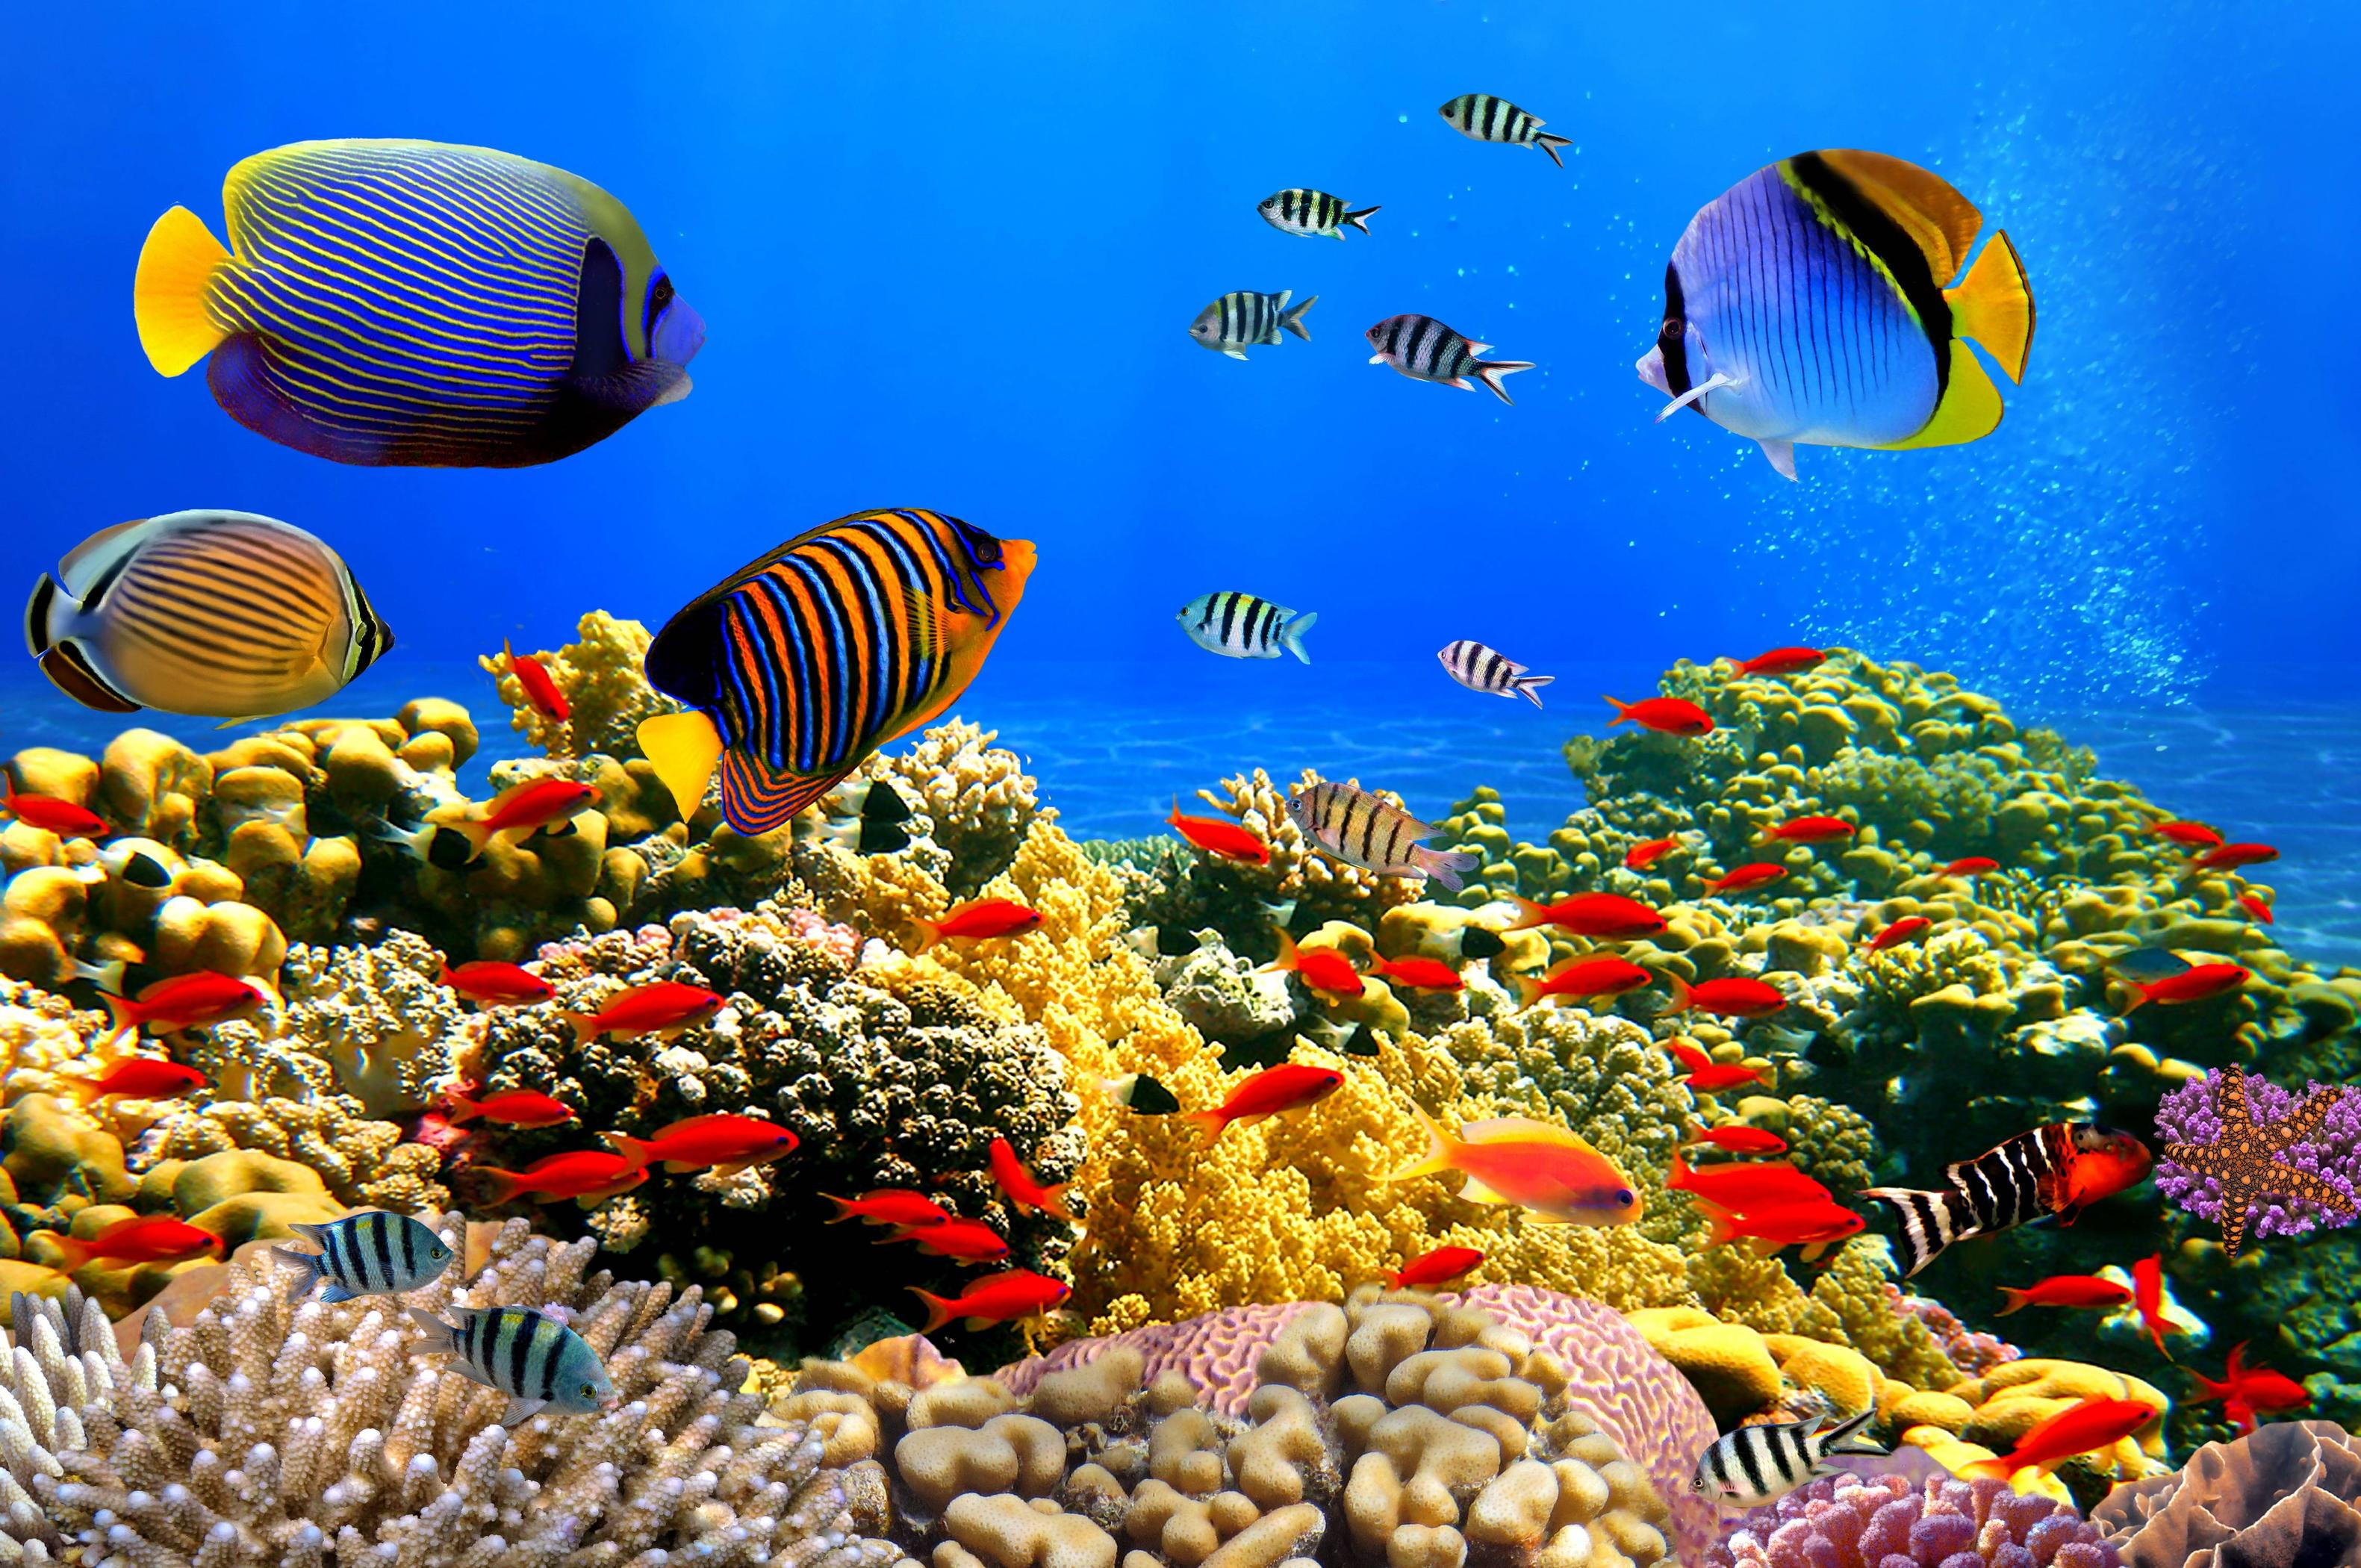 Underwater wallpaper download free pixelstalk net - Underwater desktop background ...